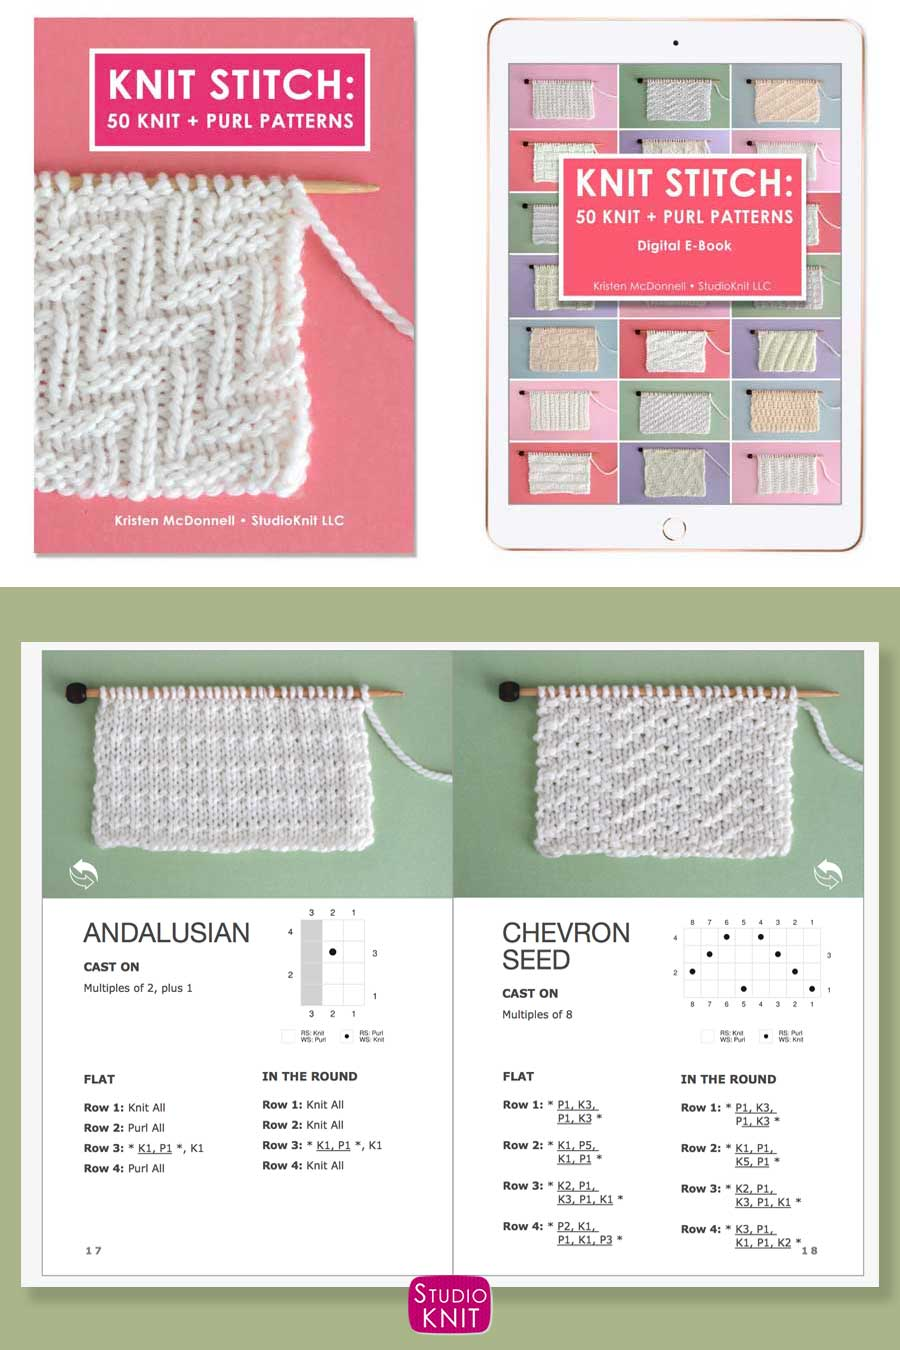 Knit Stitch Pattern Book with Andalusian Stitch Pattern by Studio Knit